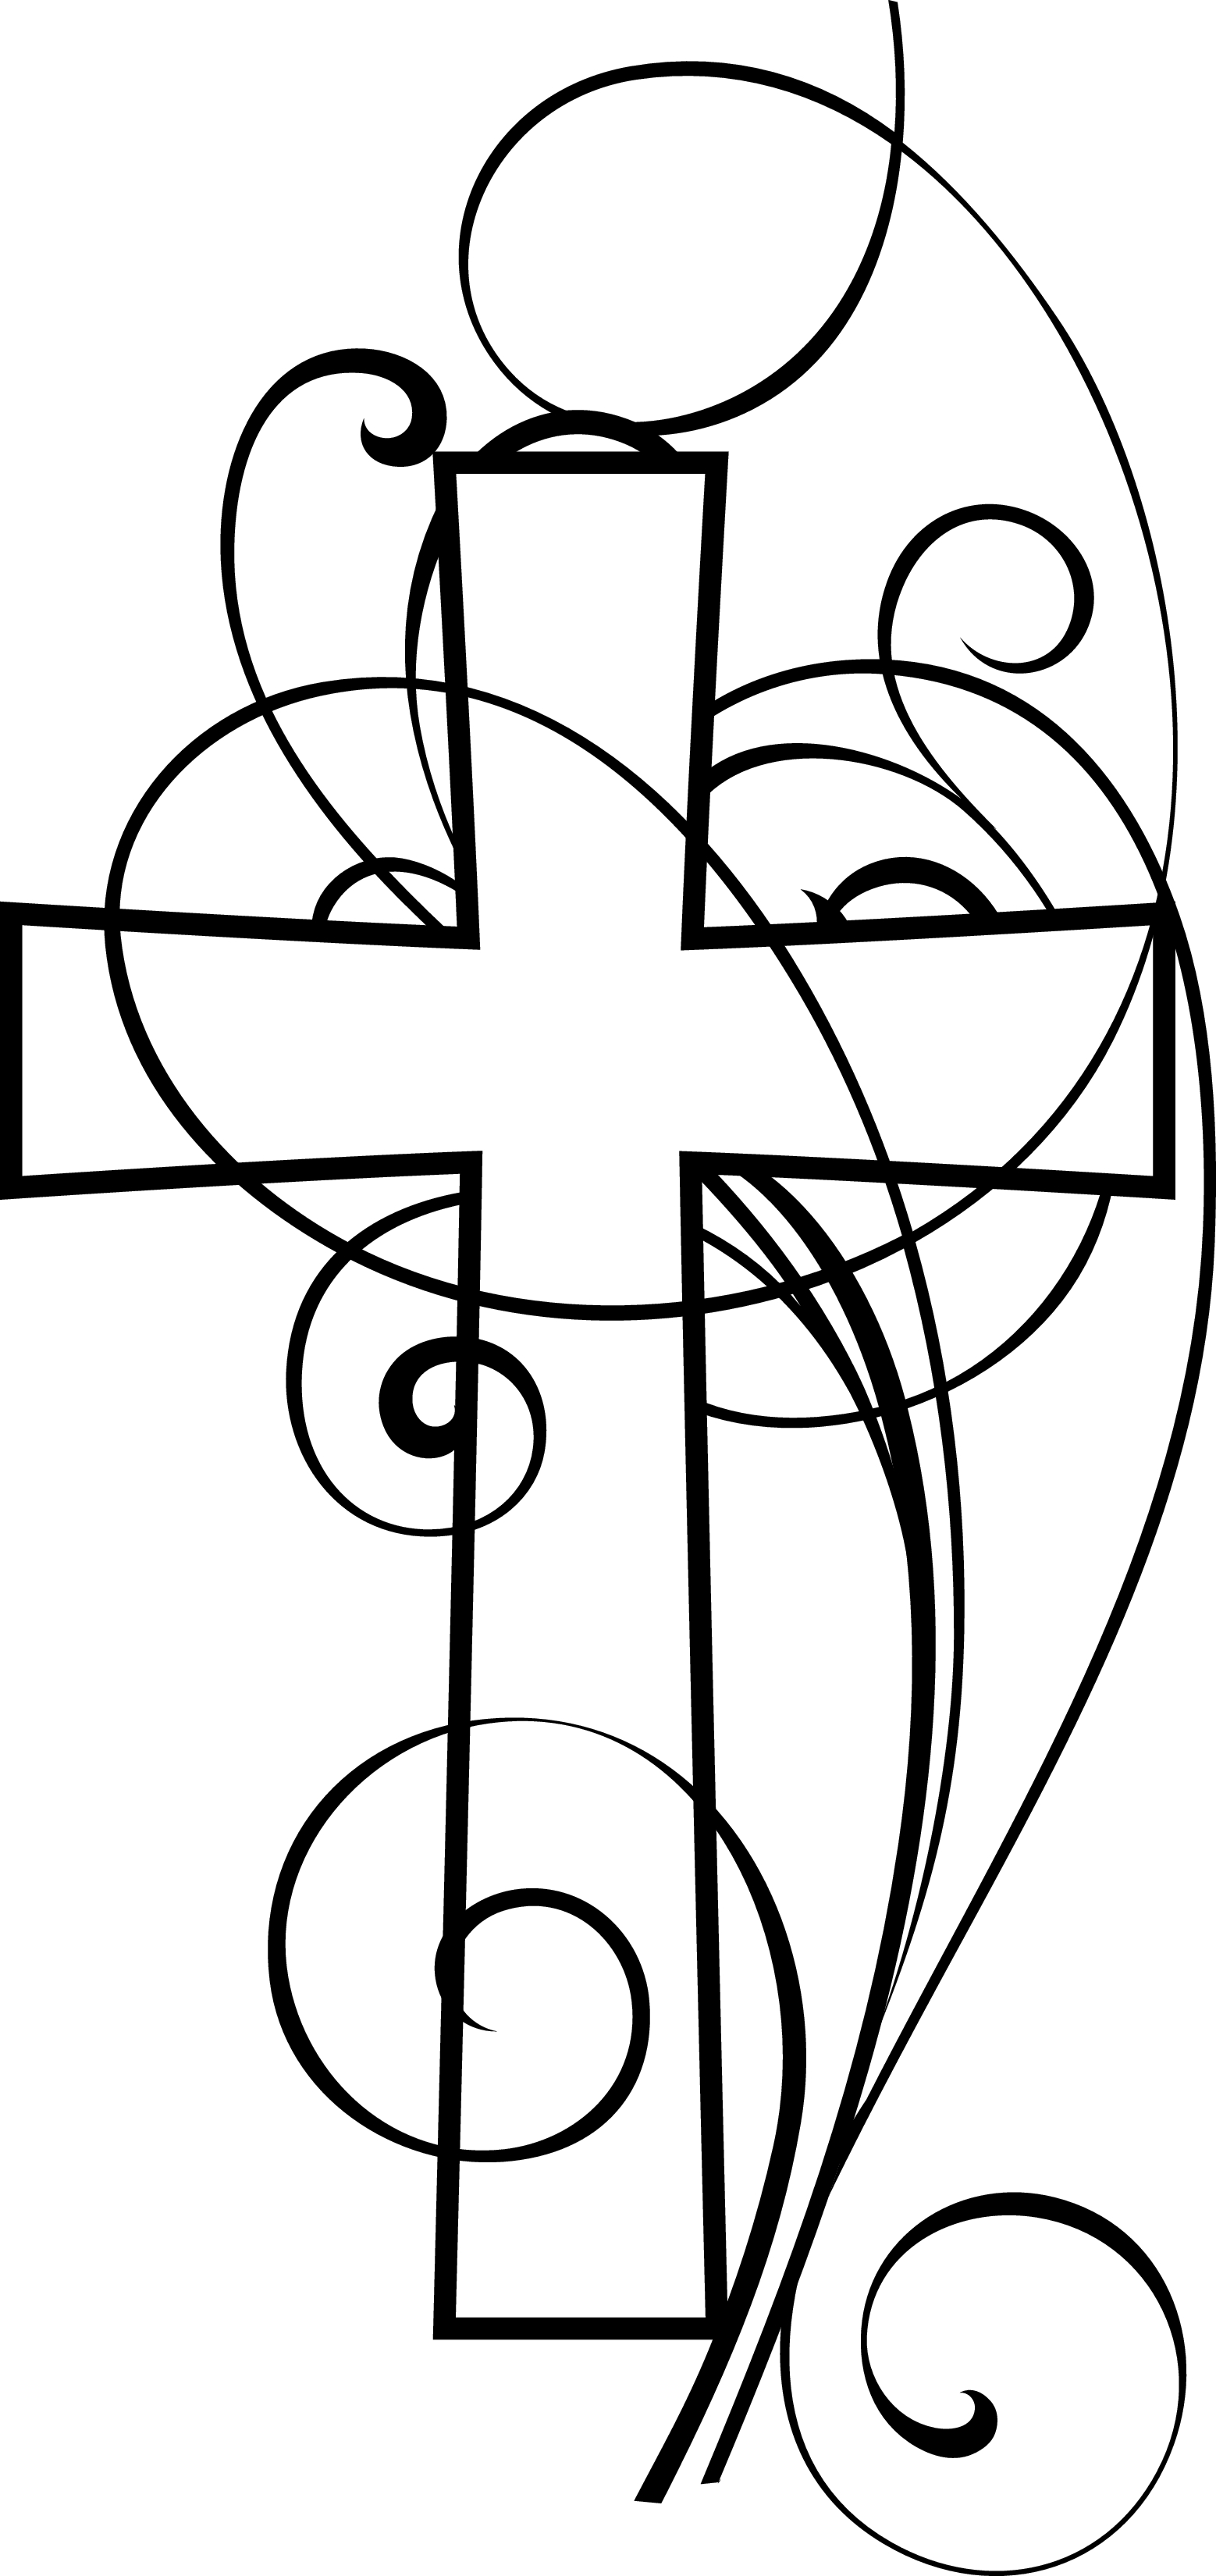 Christian Cliparts U0026middot; Clipart -christian cliparts u0026middot; clipart jesus-1